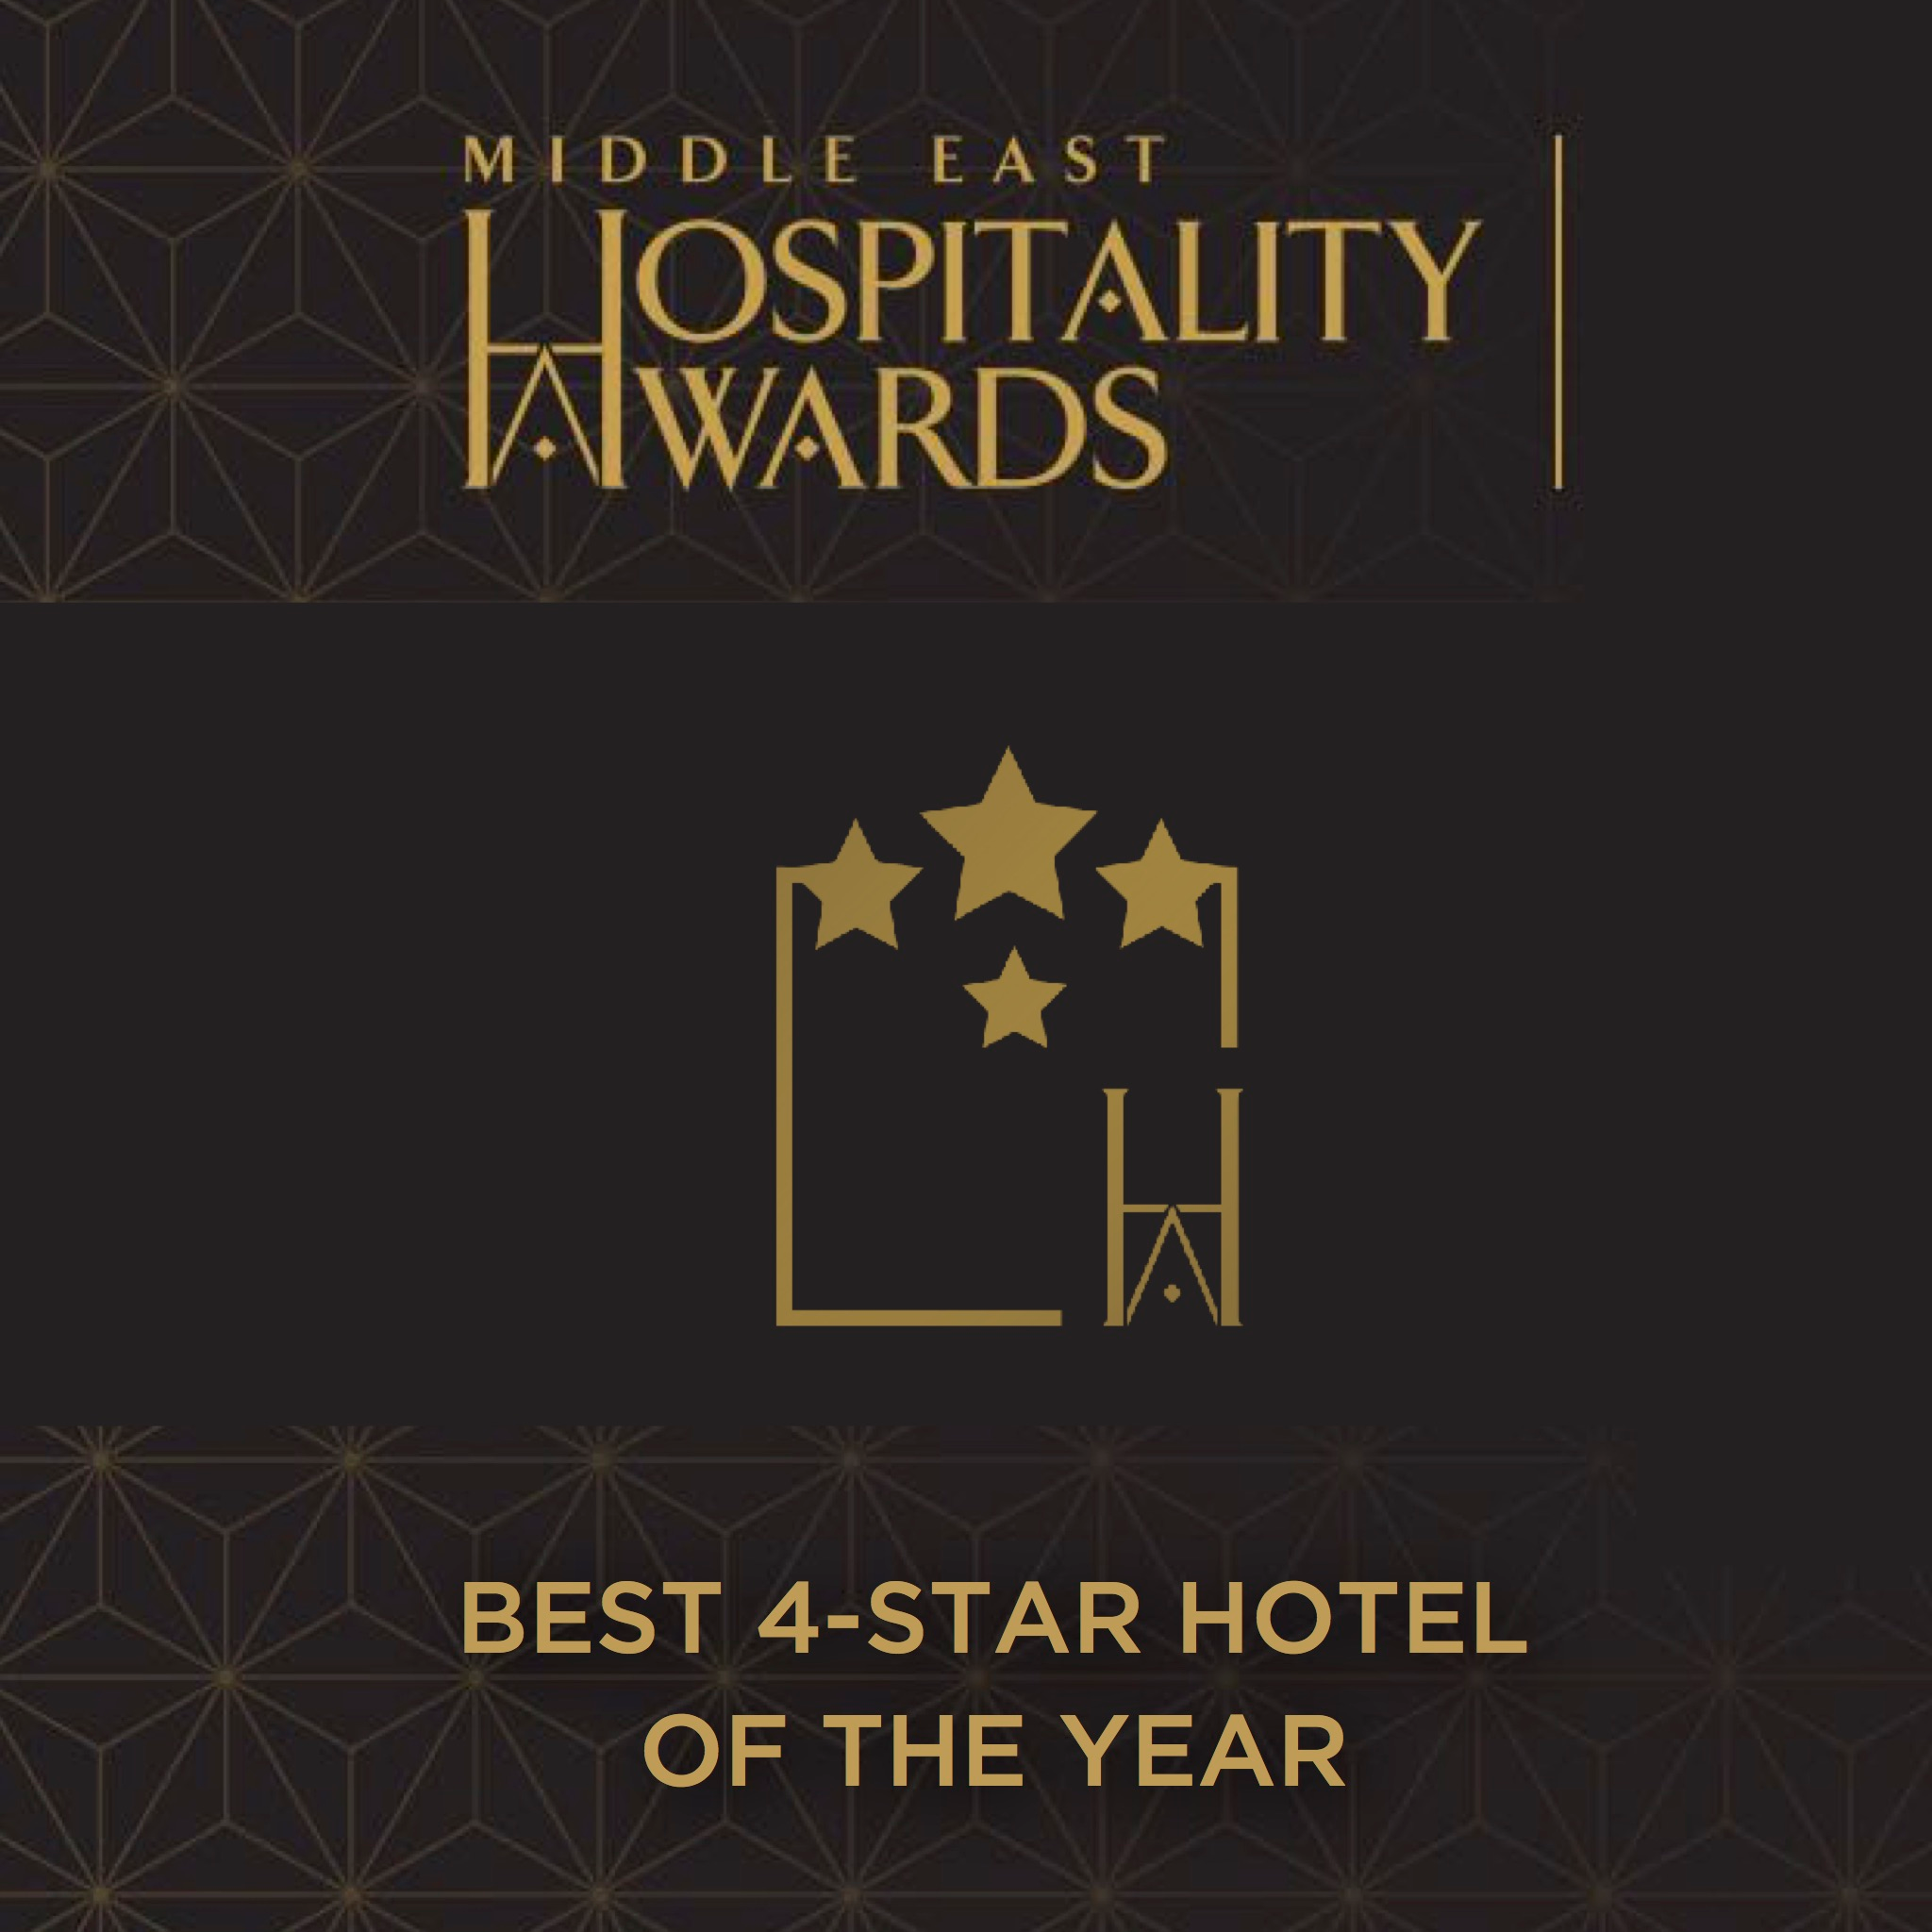 Double Award Scoop for TFG's Hotels